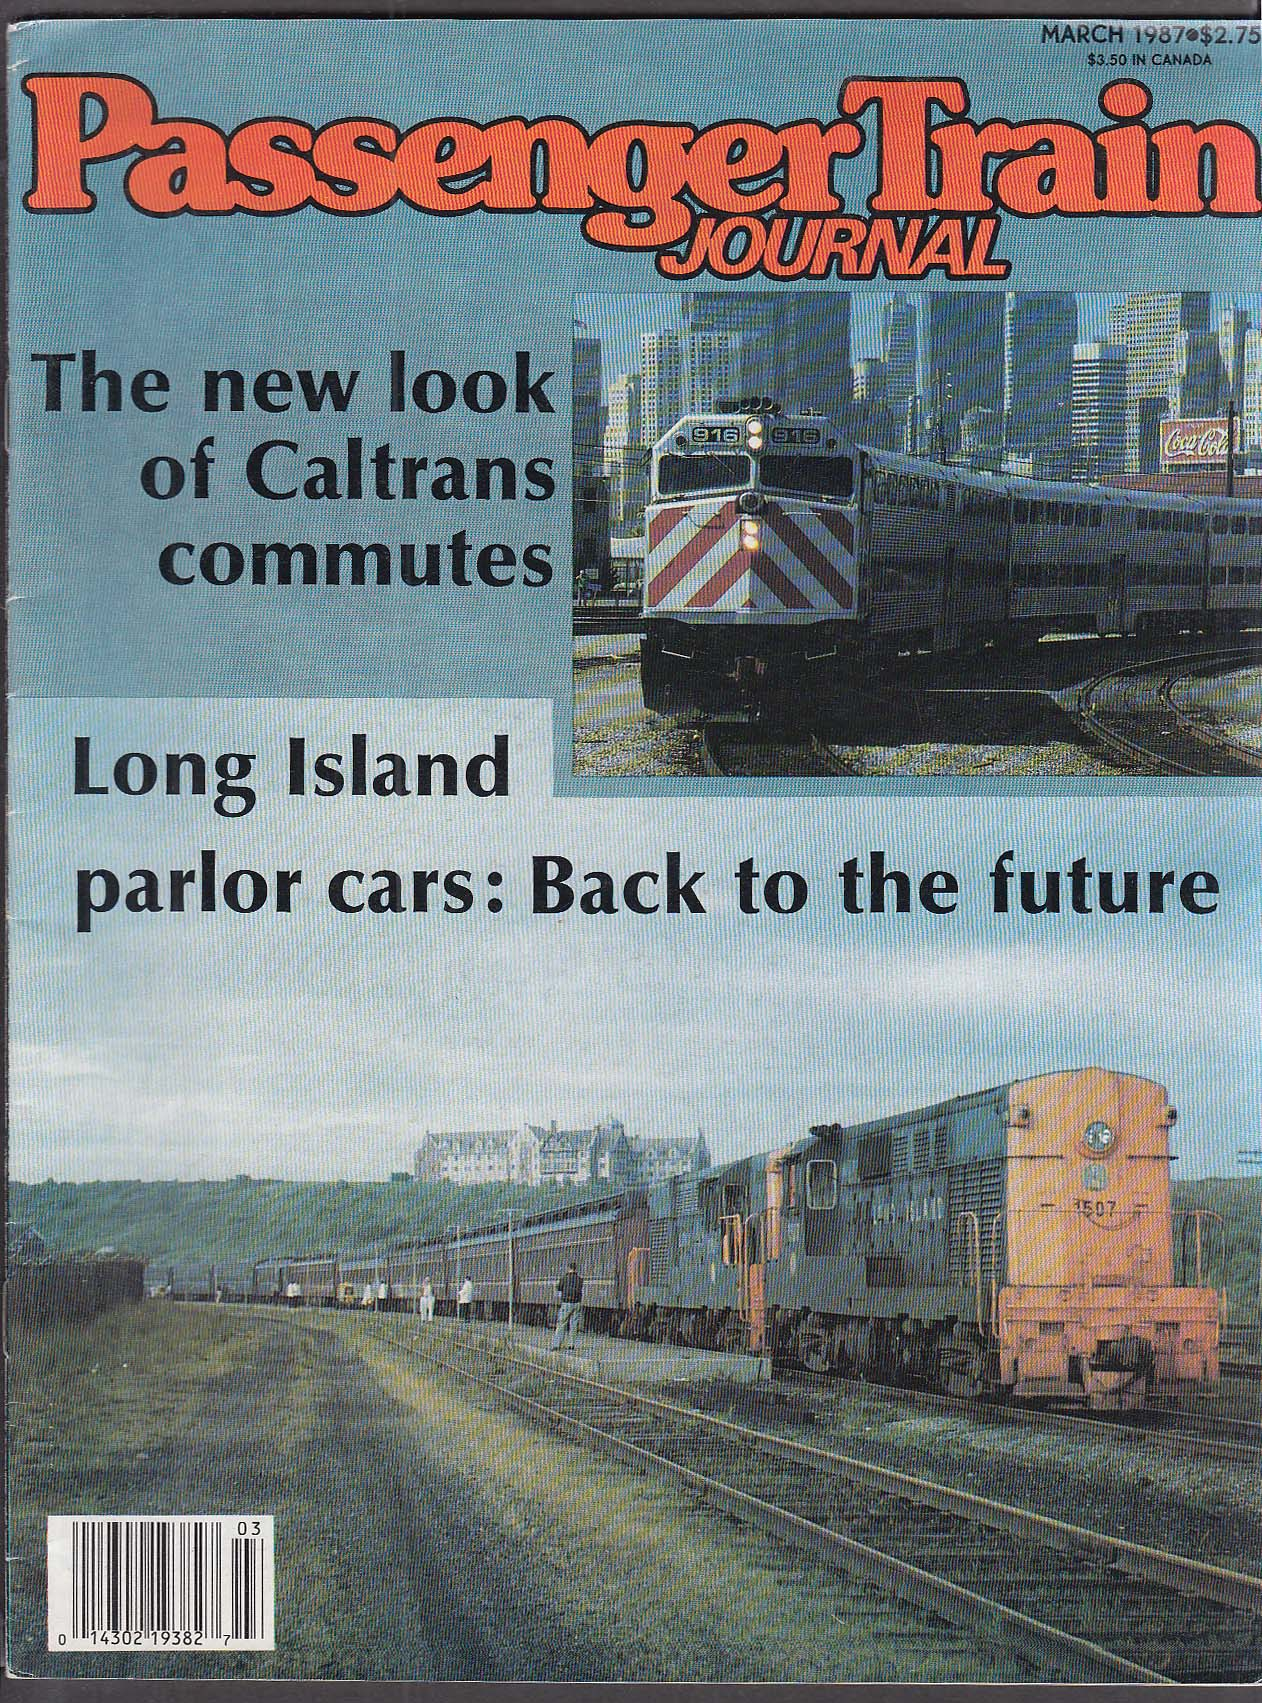 PASSENGER TRAIN JOURNAL Caltrans commuter trains, Long Island parlor cars 3 1987